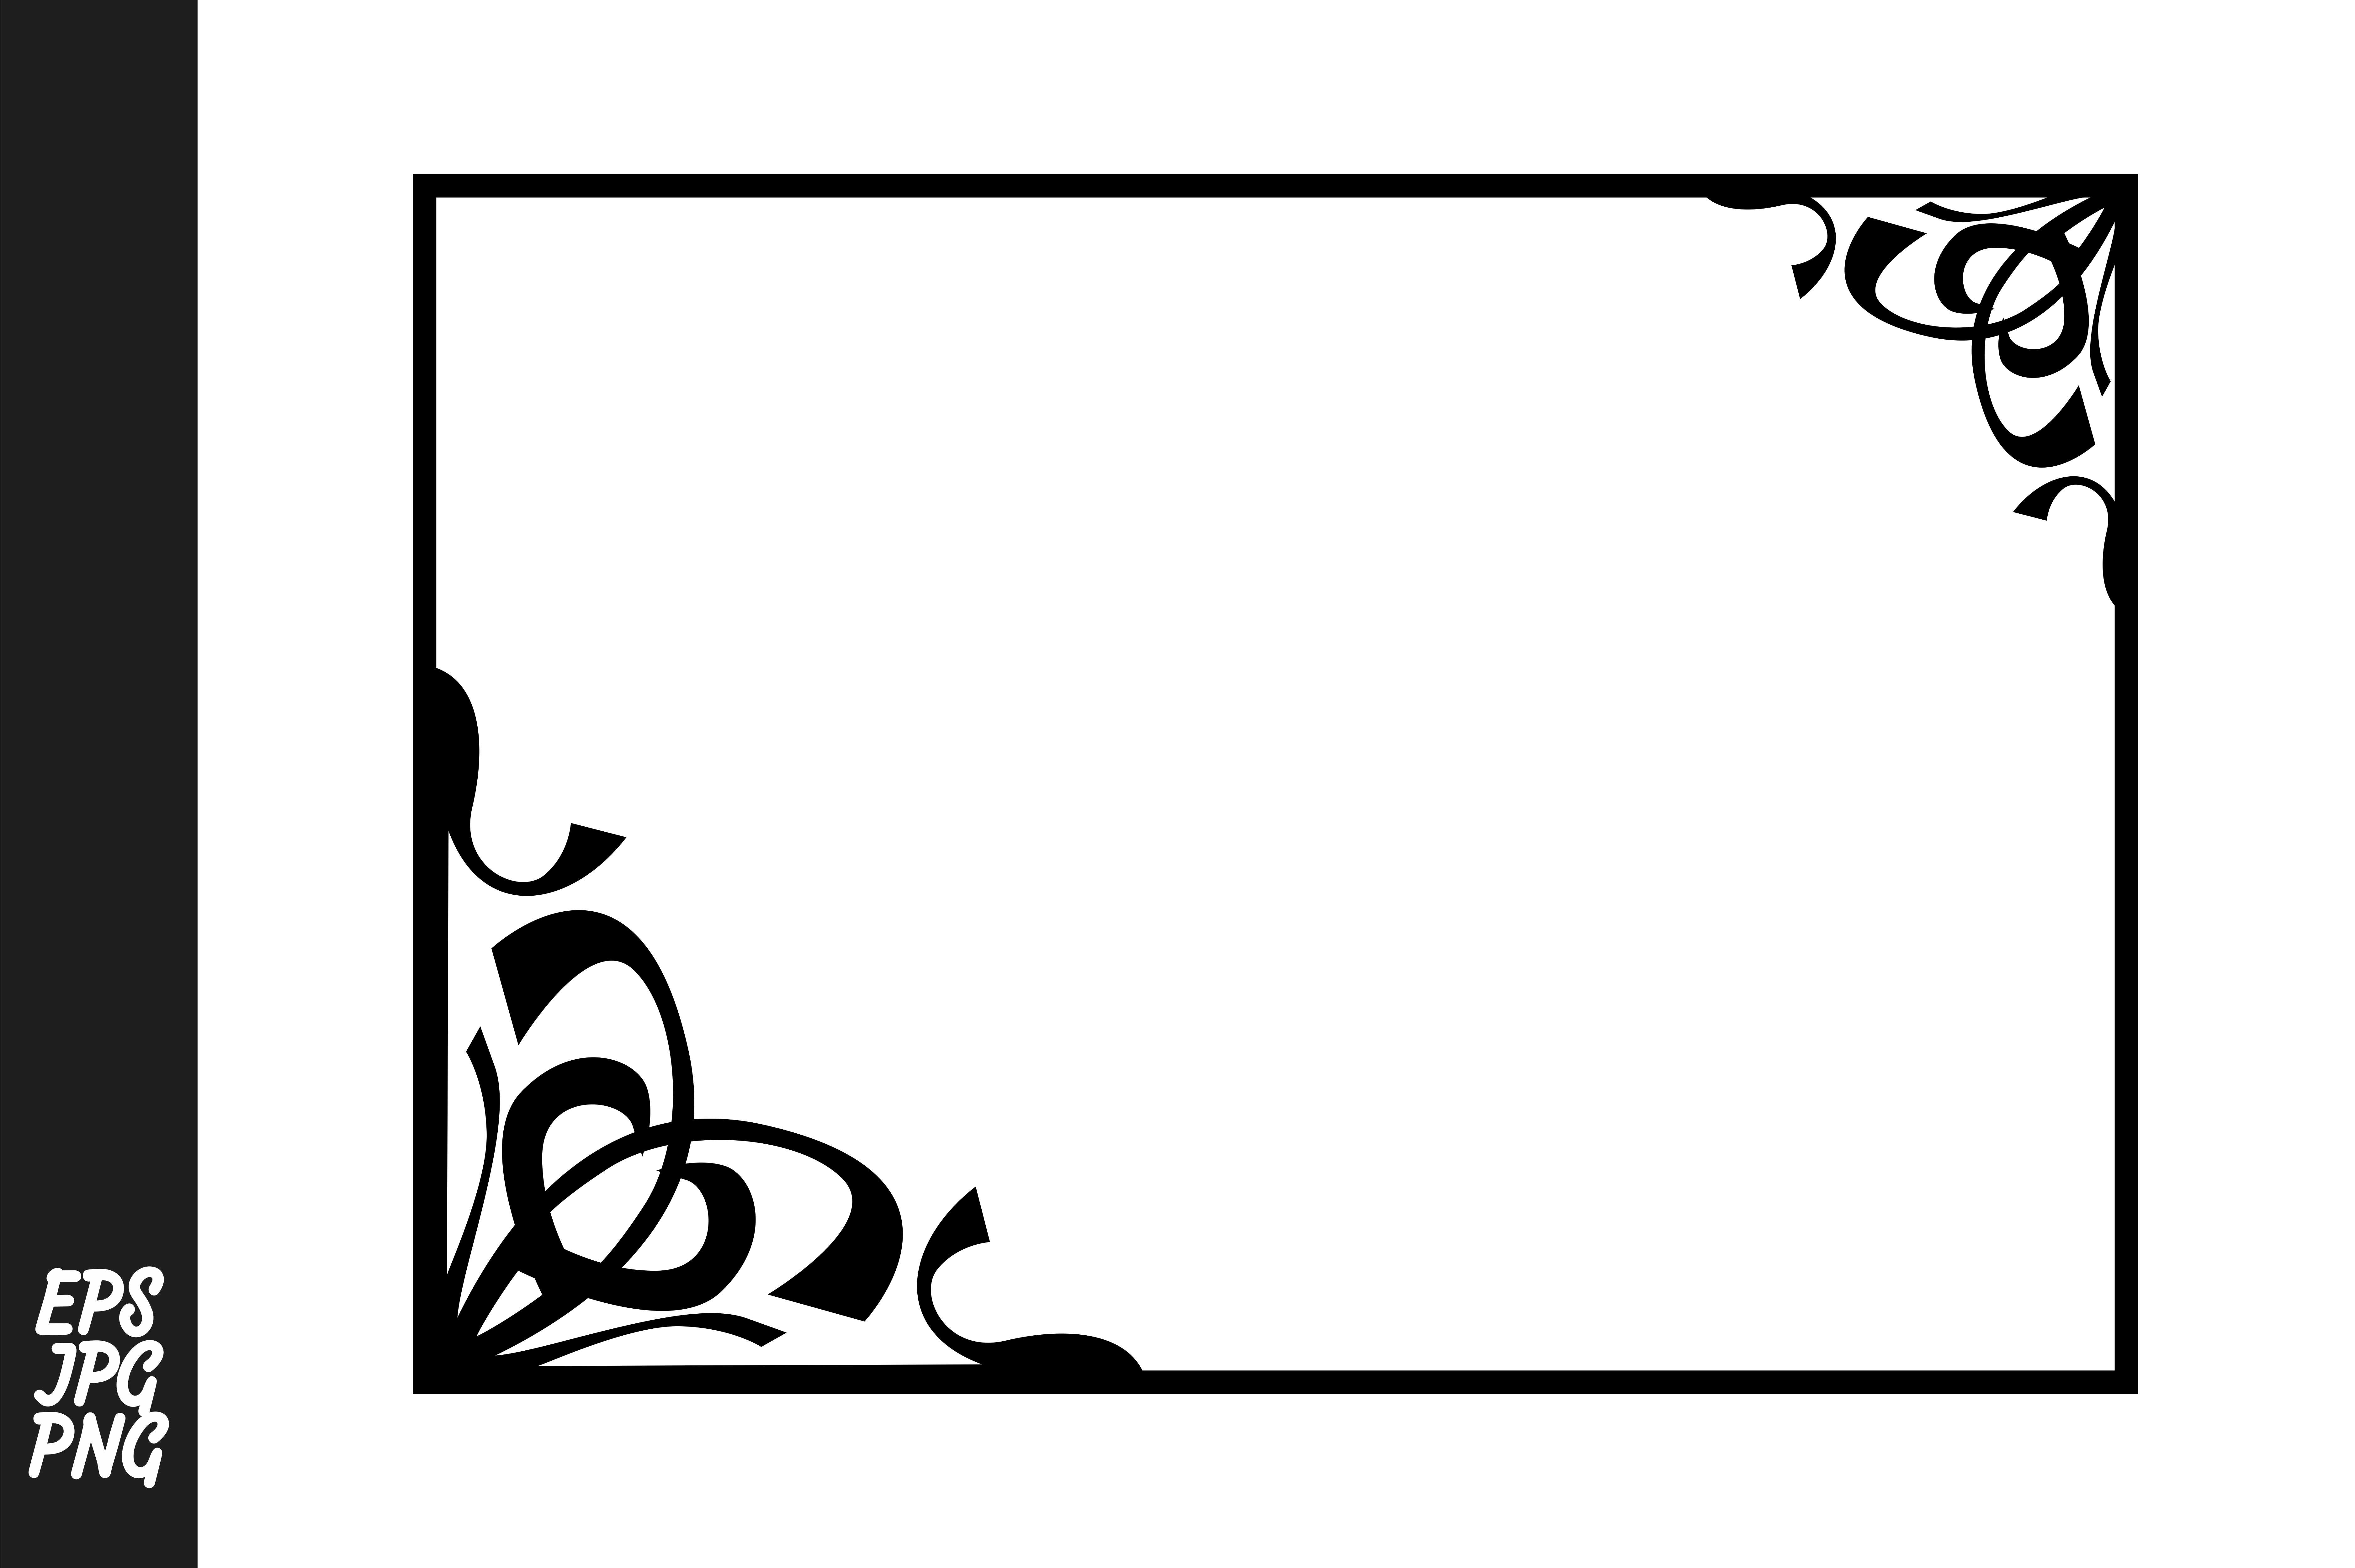 Download Free Frame Border Ornament Vector Decoration Graphic By Arief Sapta for Cricut Explore, Silhouette and other cutting machines.